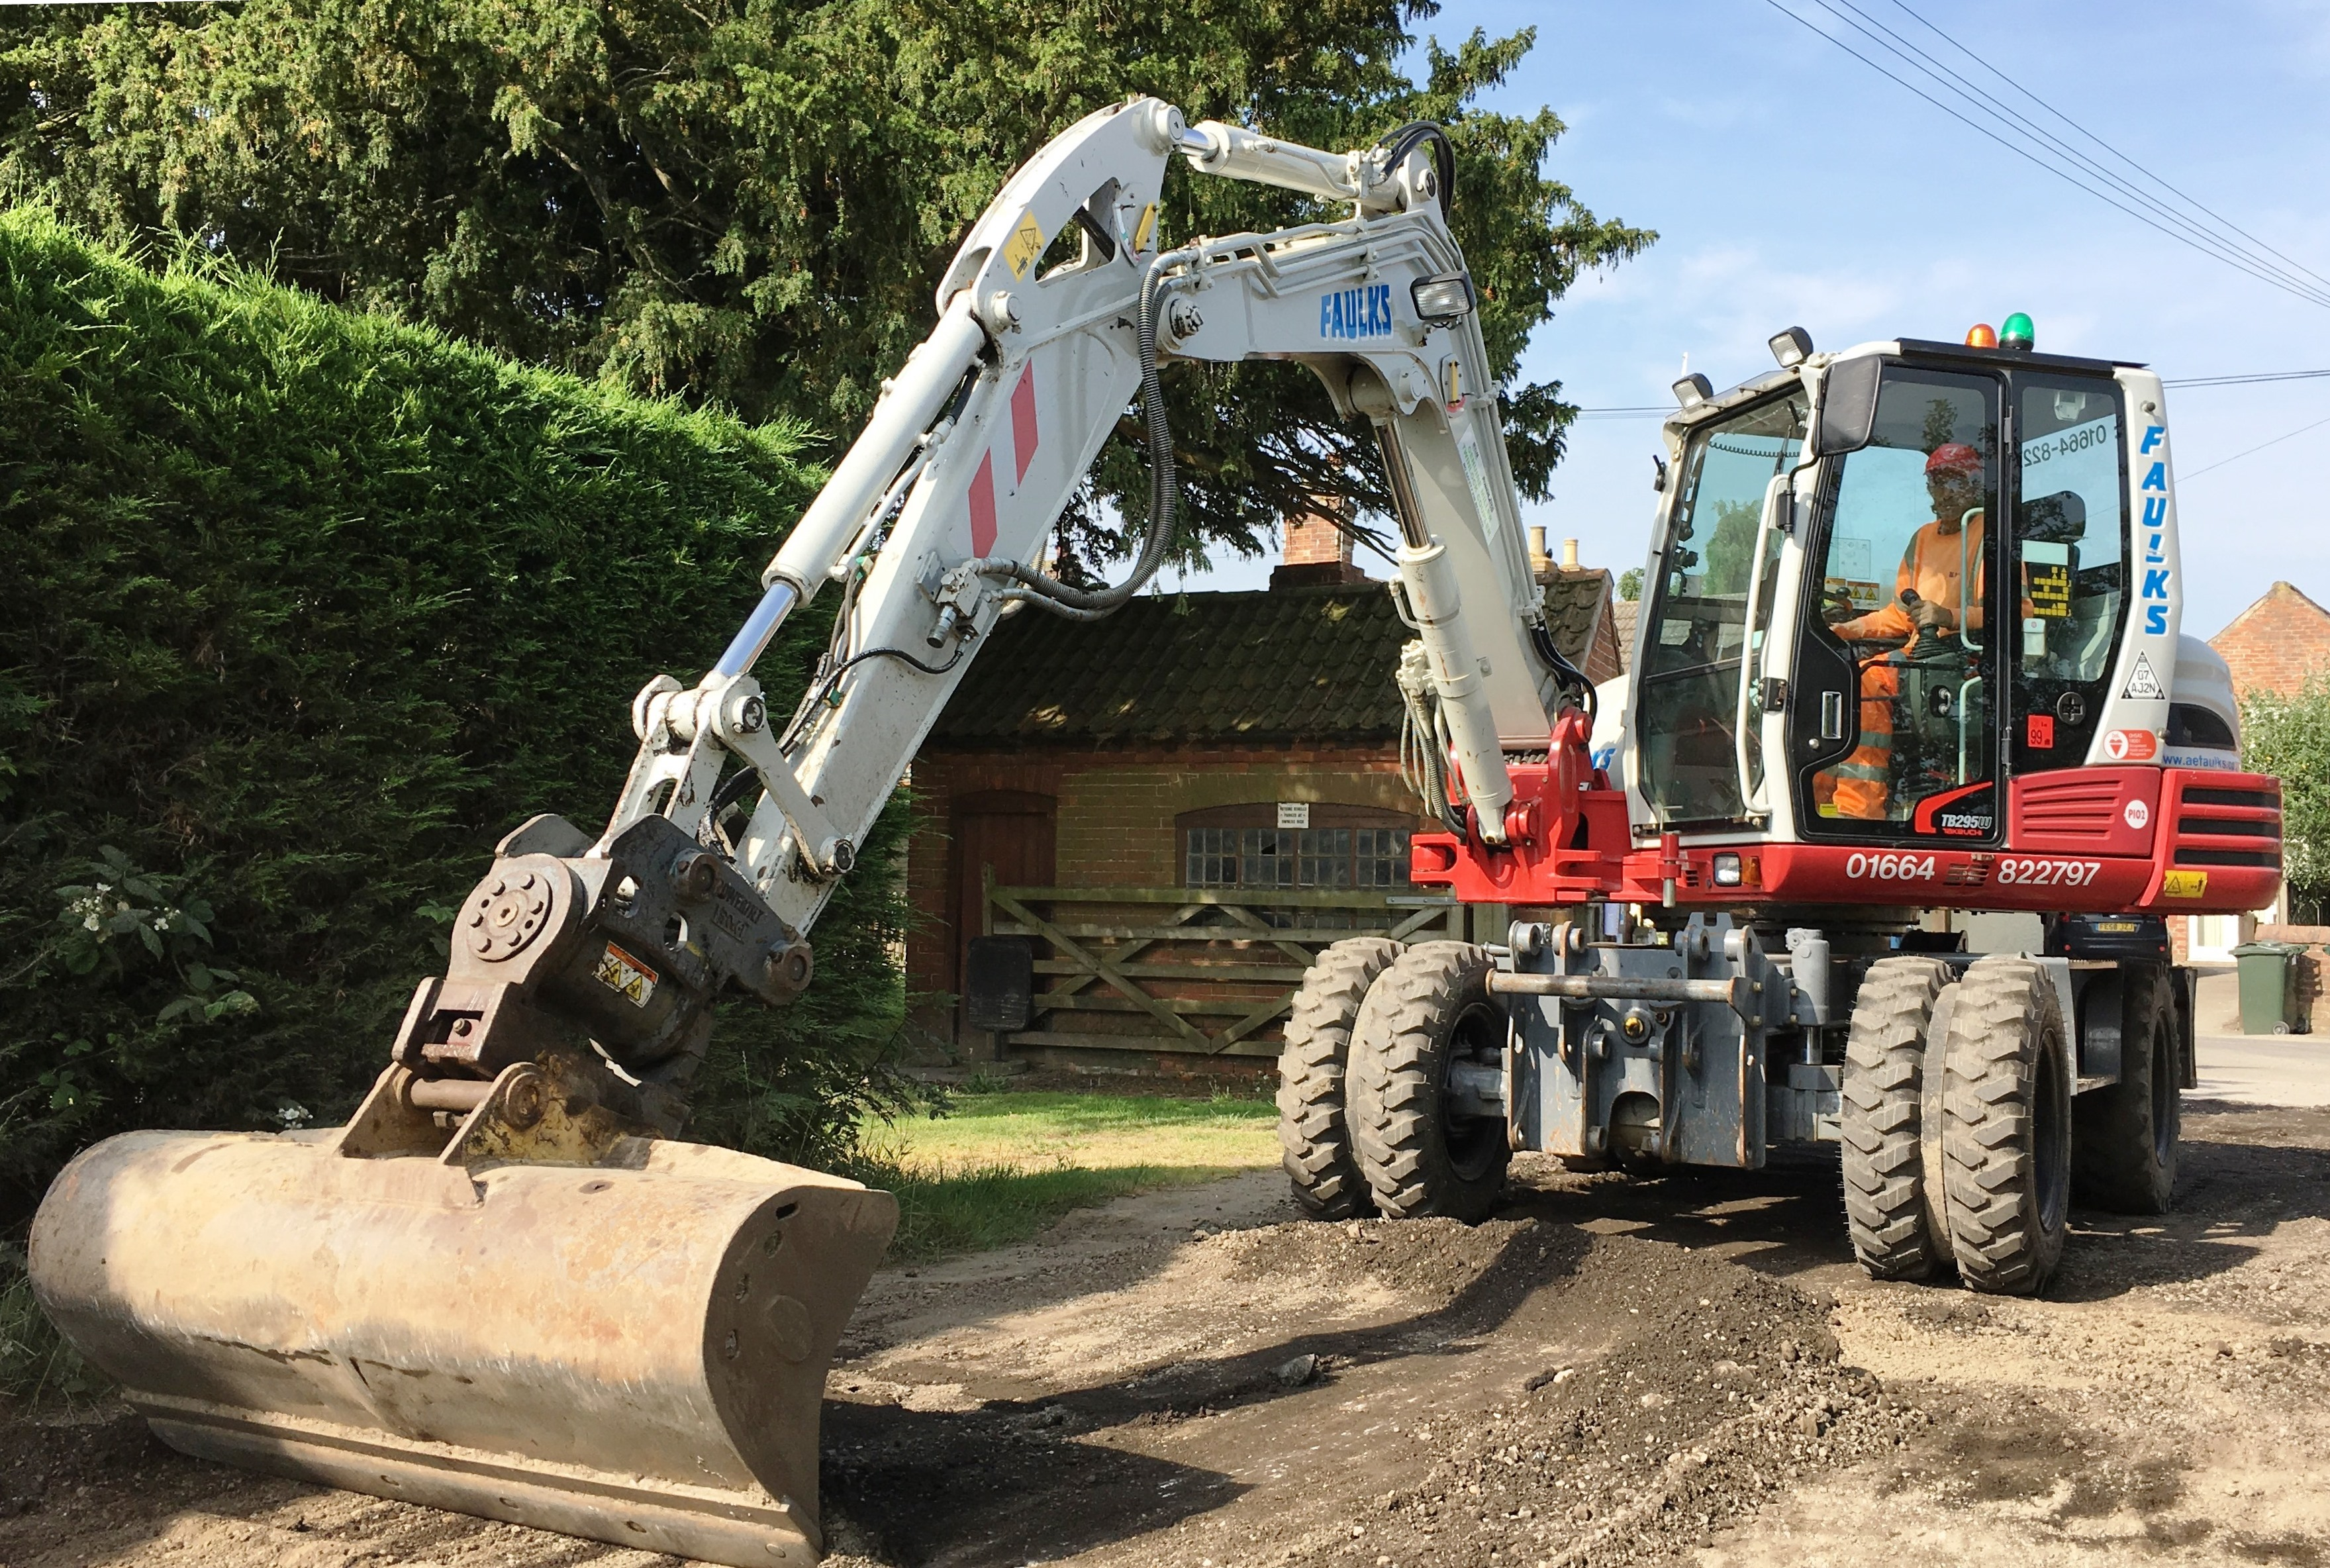 Takeuchi wheeled excavator in use on driveaway